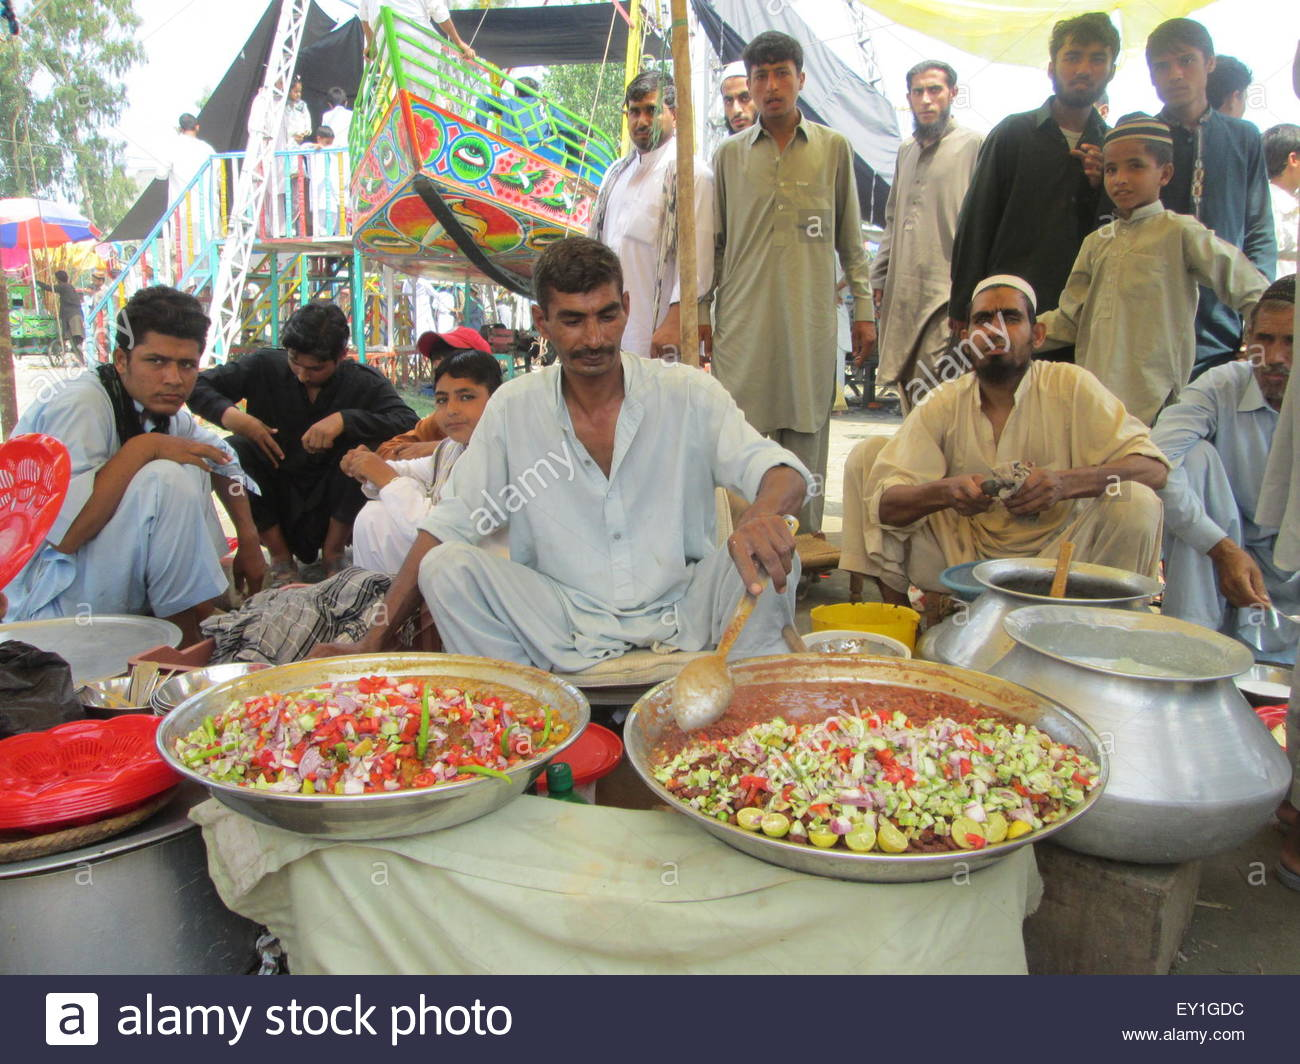 Wonderful Pakistani Eid Al-Fitr Feast - charsadda-pakistan-july-19th-2015-vendors-sell-food-as-eid-al-fitr-EY1GDC  Snapshot_568060 .jpg